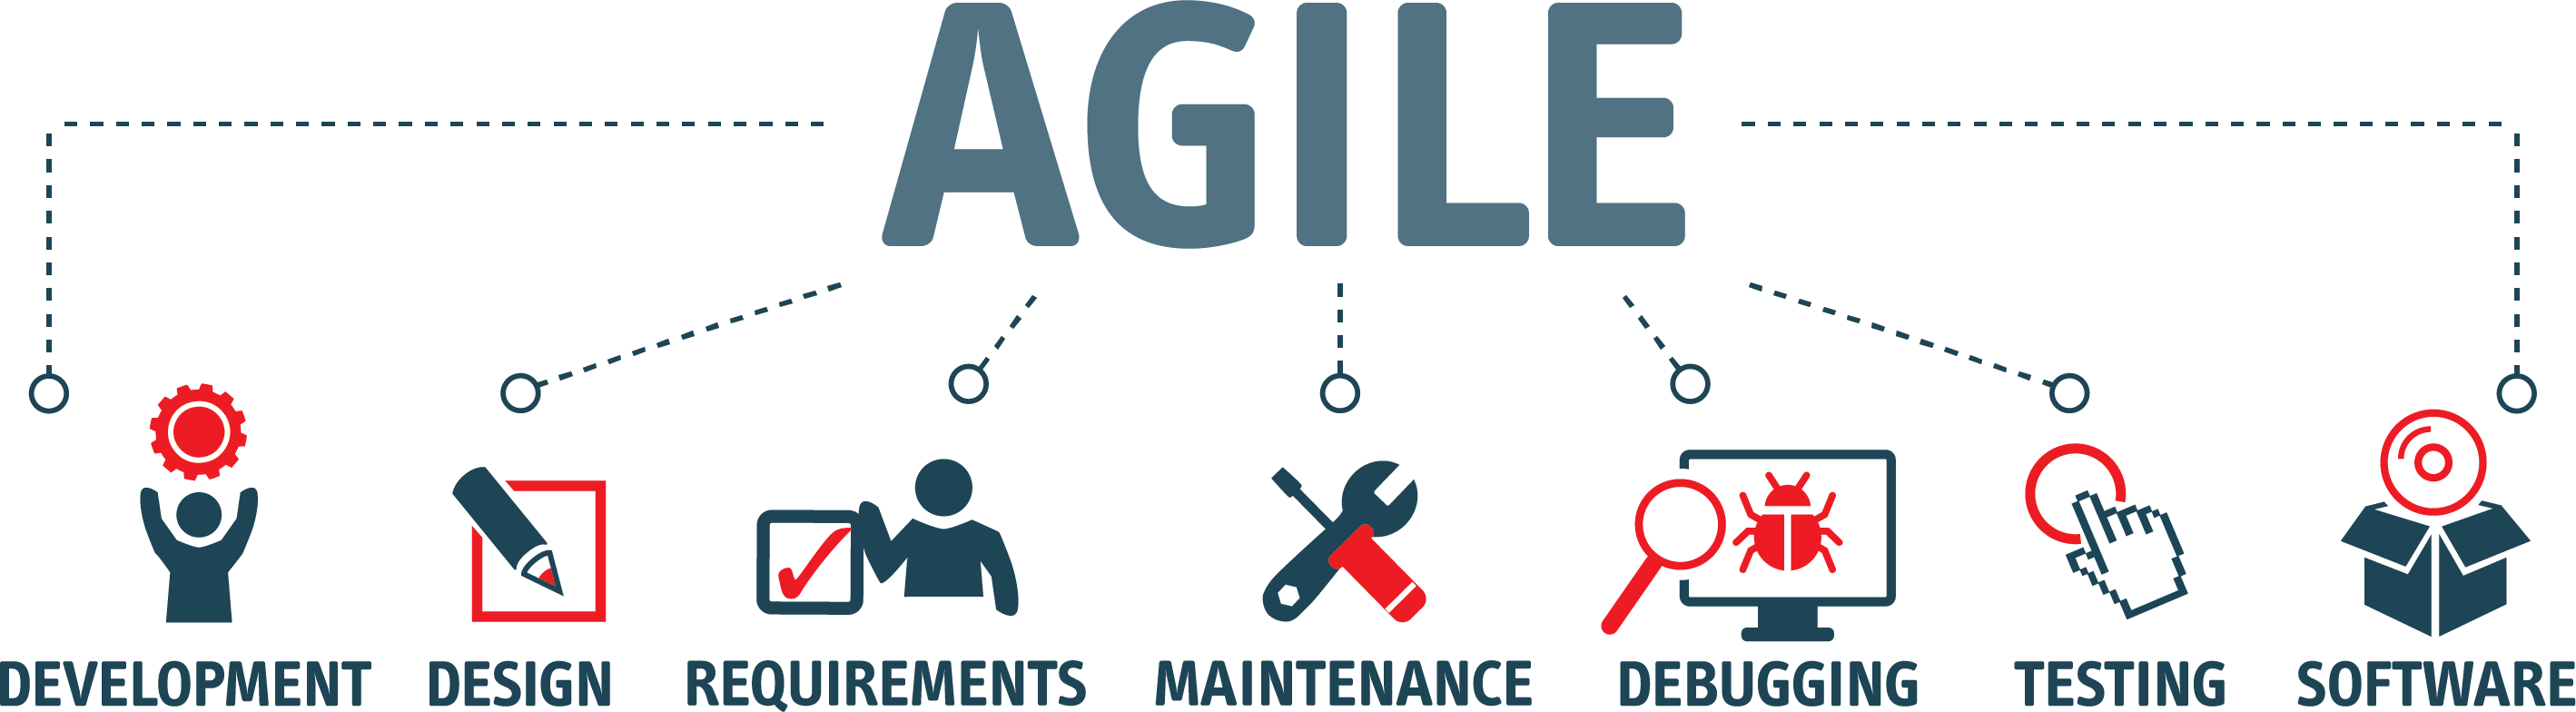 infographic for Agile Strategy for Release Management, Development design requirements maintenance debugging testing software